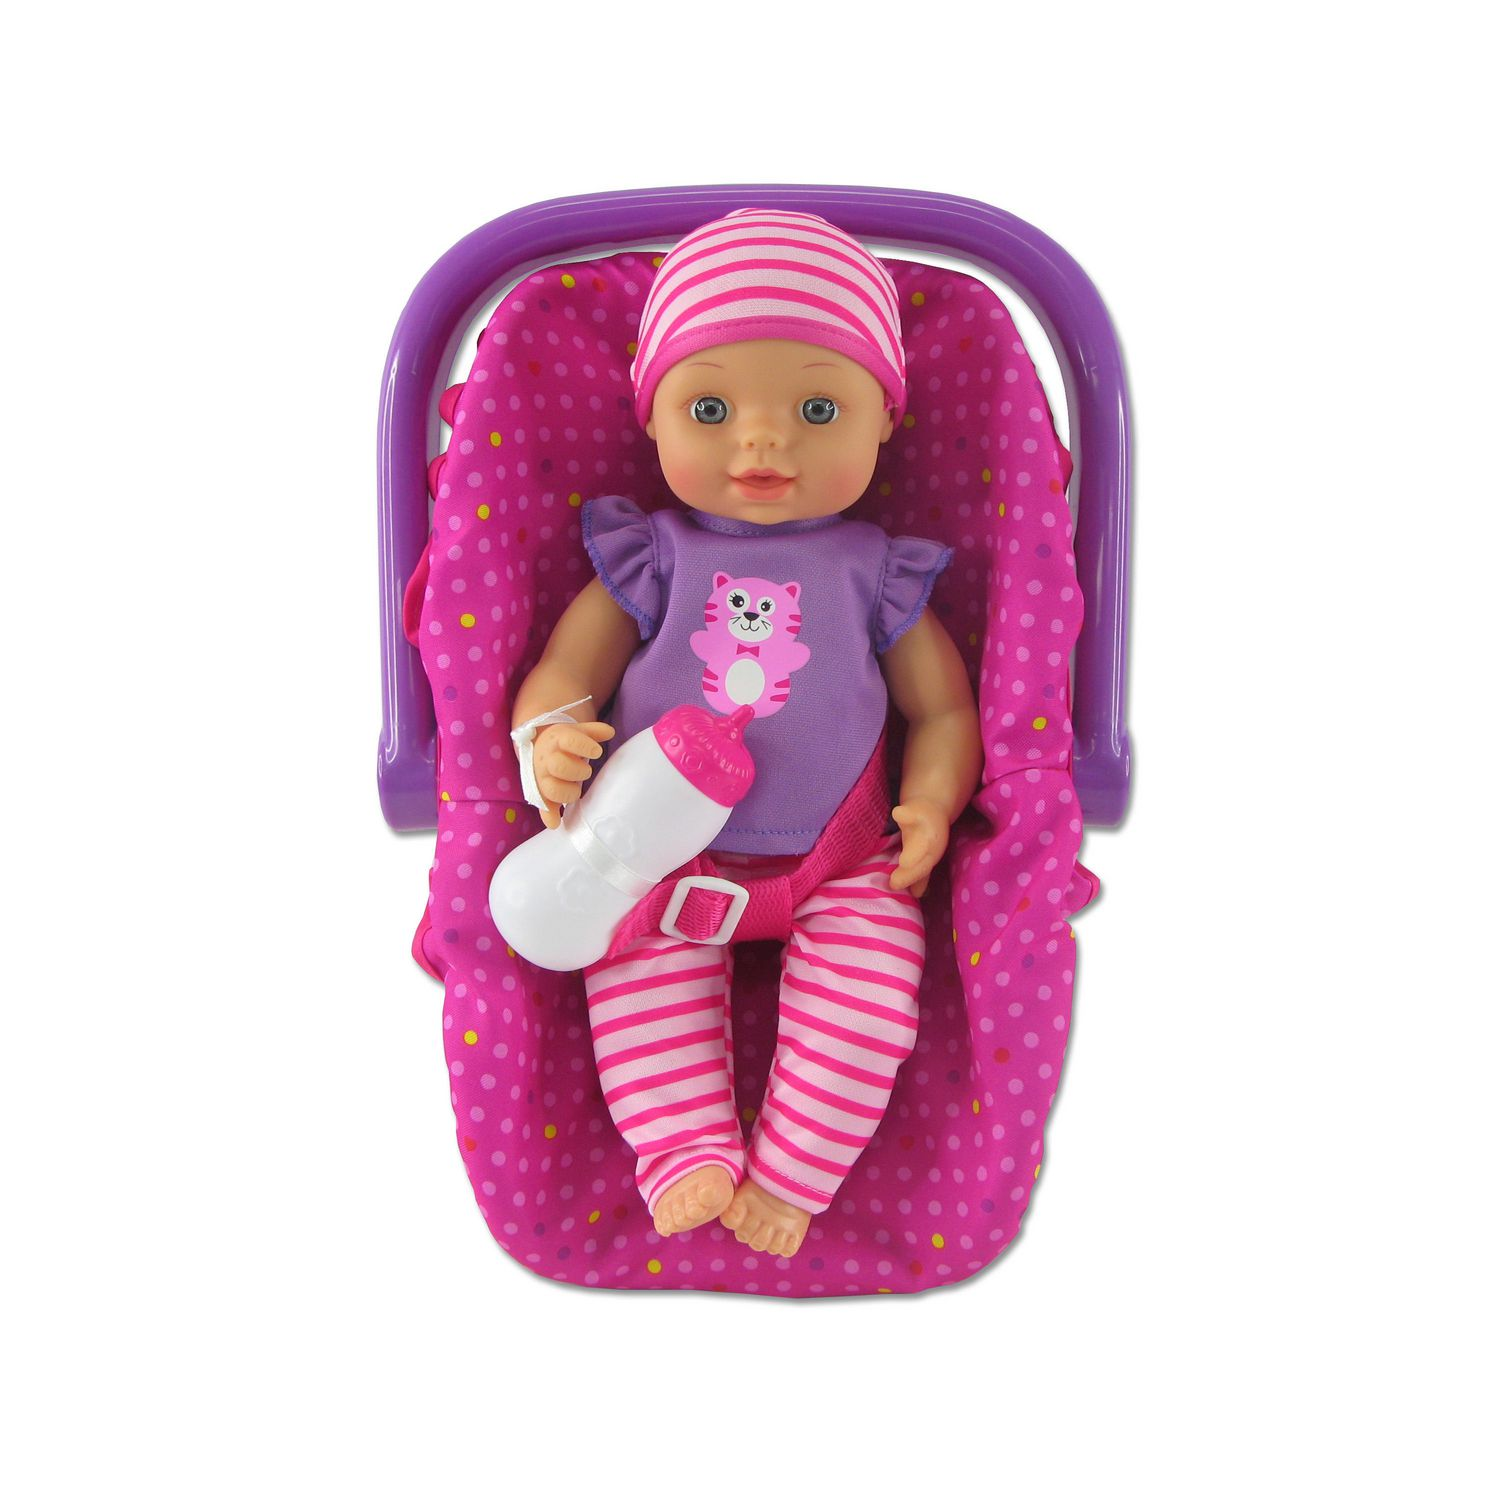 My Sweet Baby 13 Inch Doll With Carrier Set